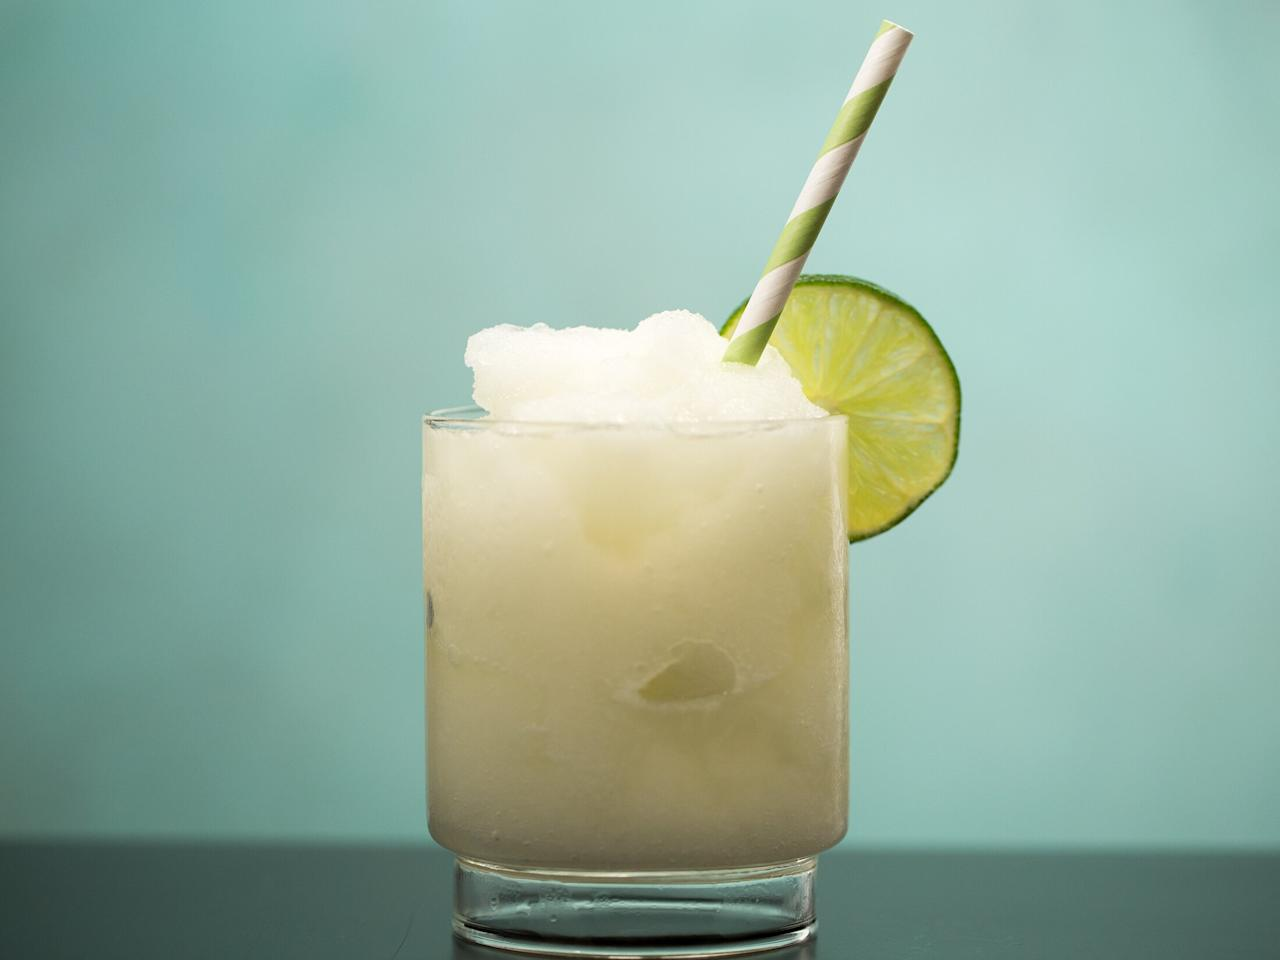 """<p>It's time to let go of the sweet and sour mix. These easy margaritas are mostly sour with a bit of sweetness and make your mouth water before you even take a sip. It's not overly sweet and heavy, but refreshing and even a little potent. Squeezing your own lime juice makes all the difference, so don't take any bottled shortcuts. </p> <p><a href=""""https://www.myrecipes.com/recipe/classic-frozen-margarita-0"""">Classic Frozen Margarita Recipe</a></p>"""